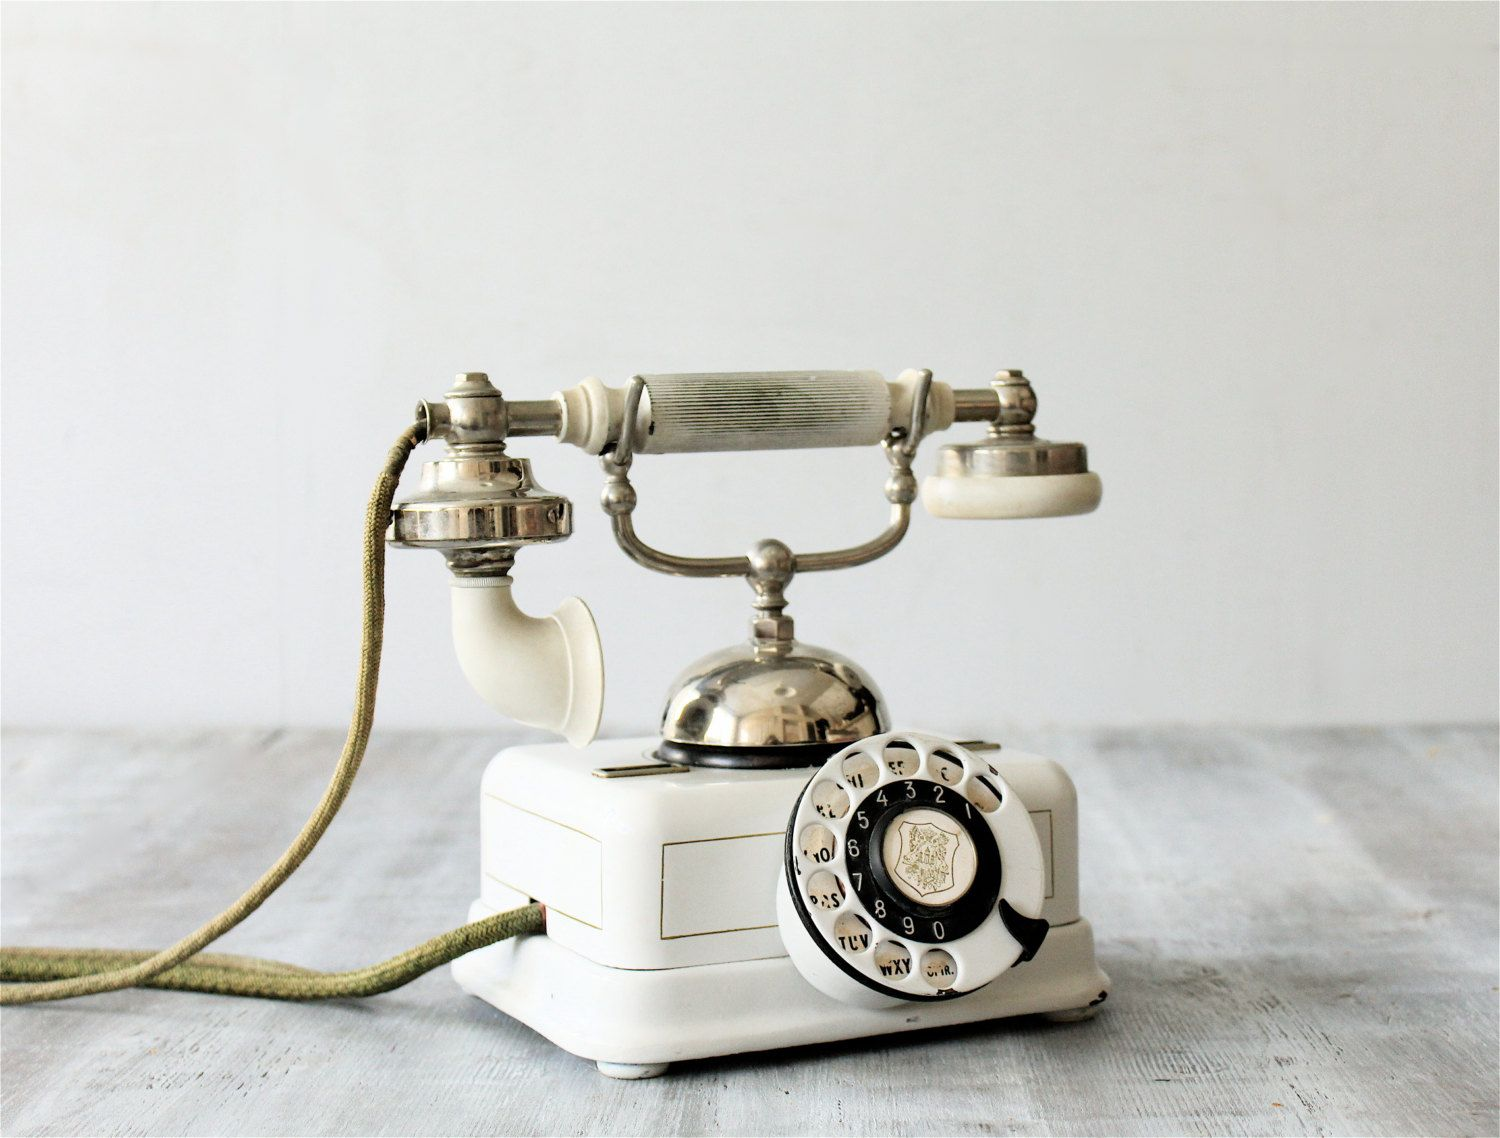 1940s Danish Phone. Have this phone in guest bedroom.